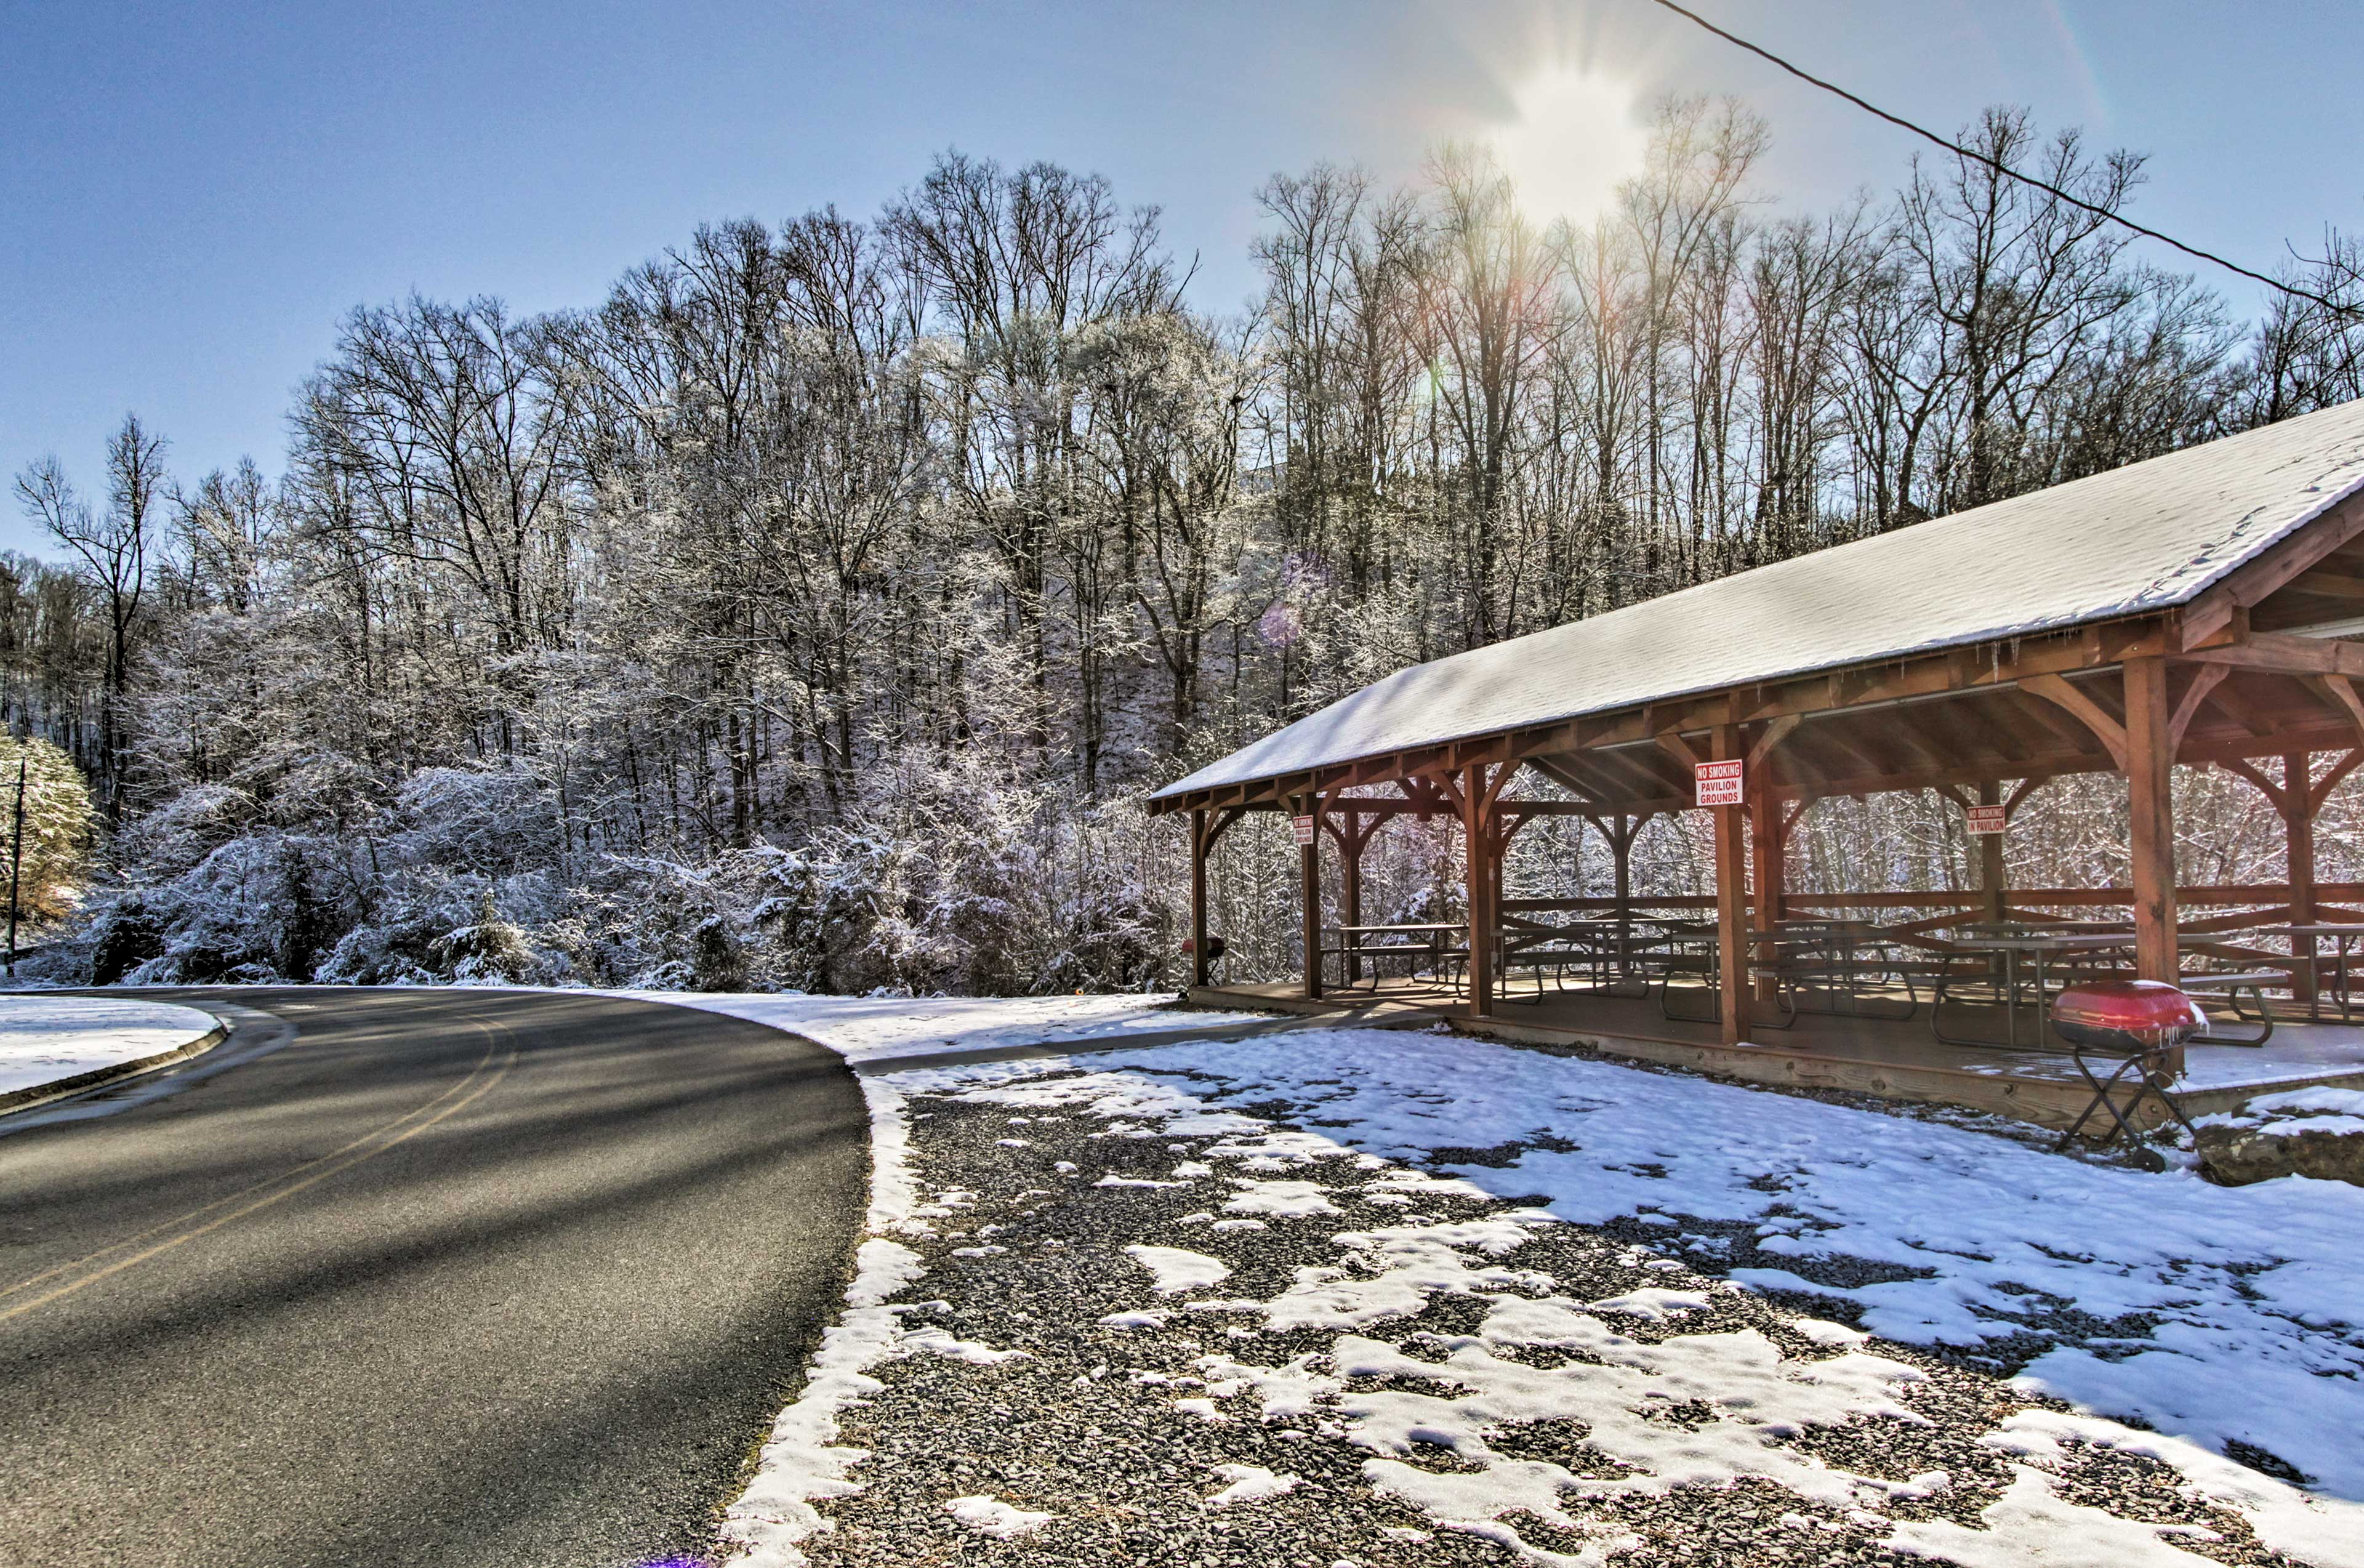 Take a quick drive down the community picnic area for lunch under the gazebo.